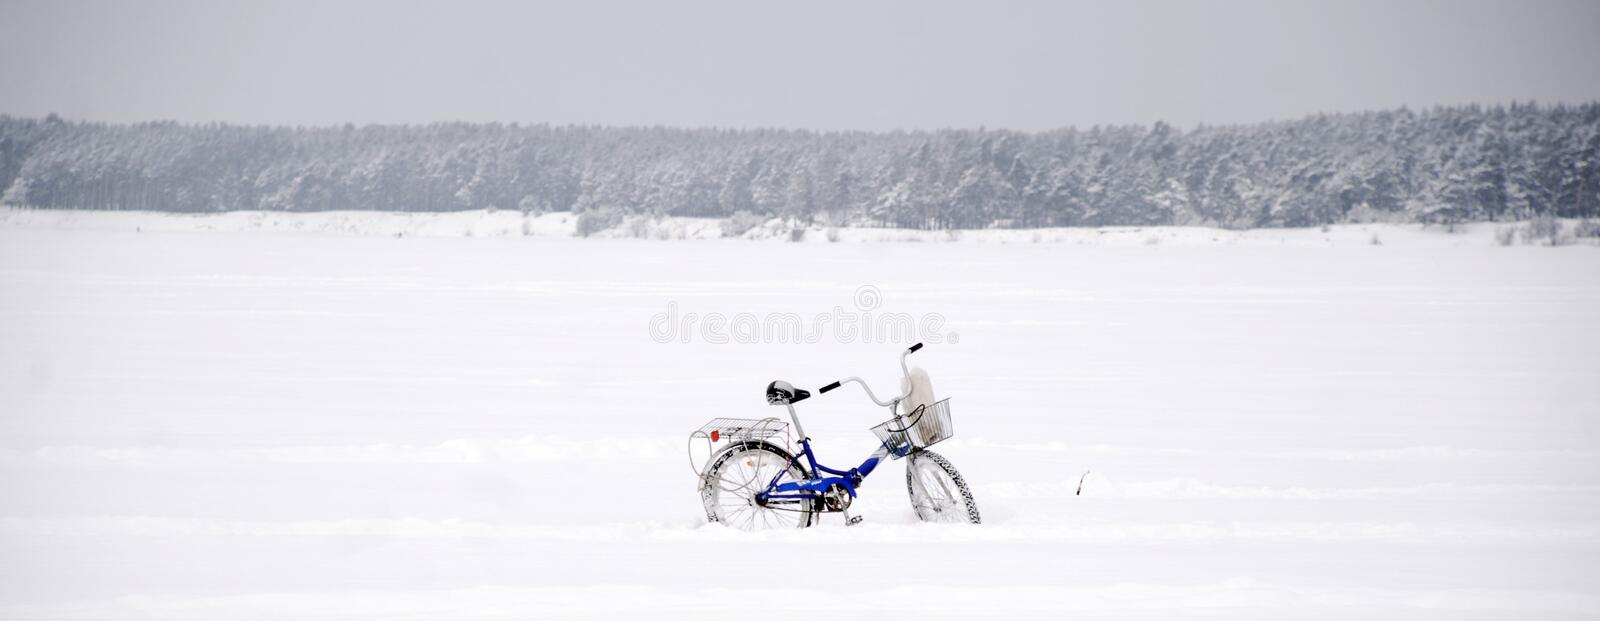 Bicycle. Absurd scene: single bicycle amongst winter margin stock image